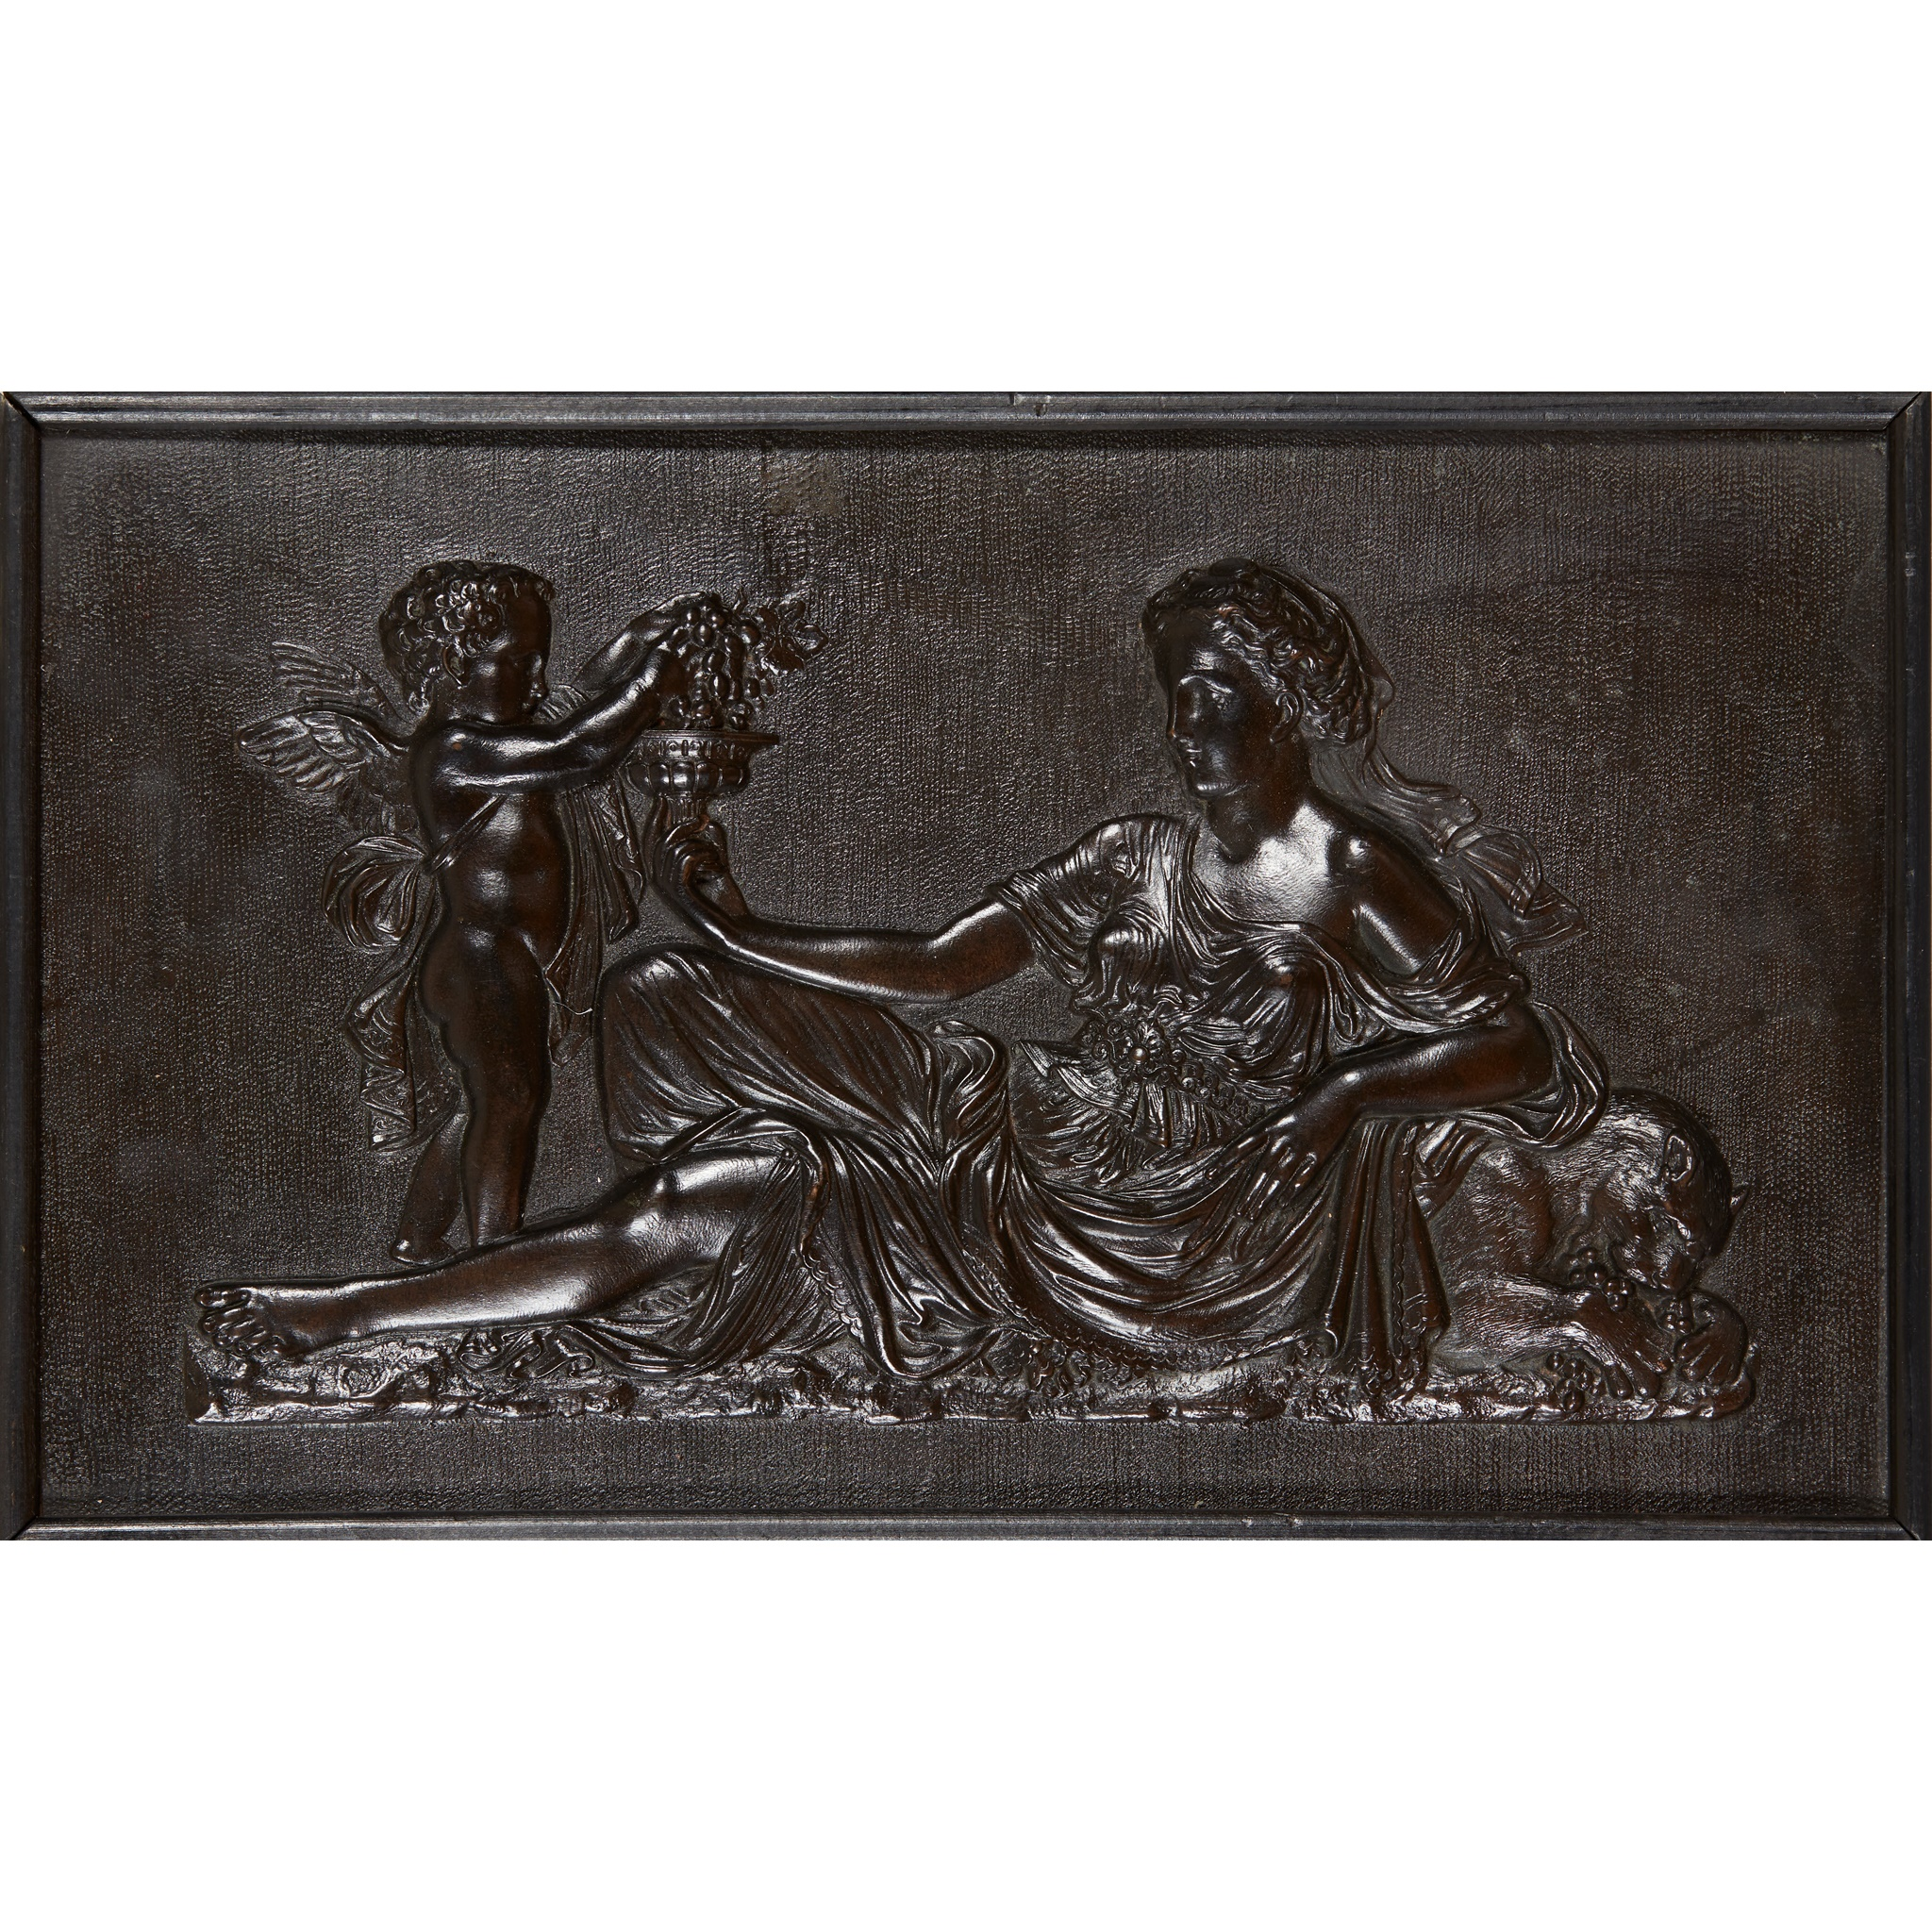 PAIR OF CLASSICAL BRONZE RELIEF PLAQUES LATE 19TH/ EARLY 20TH CENTURY - Image 2 of 2